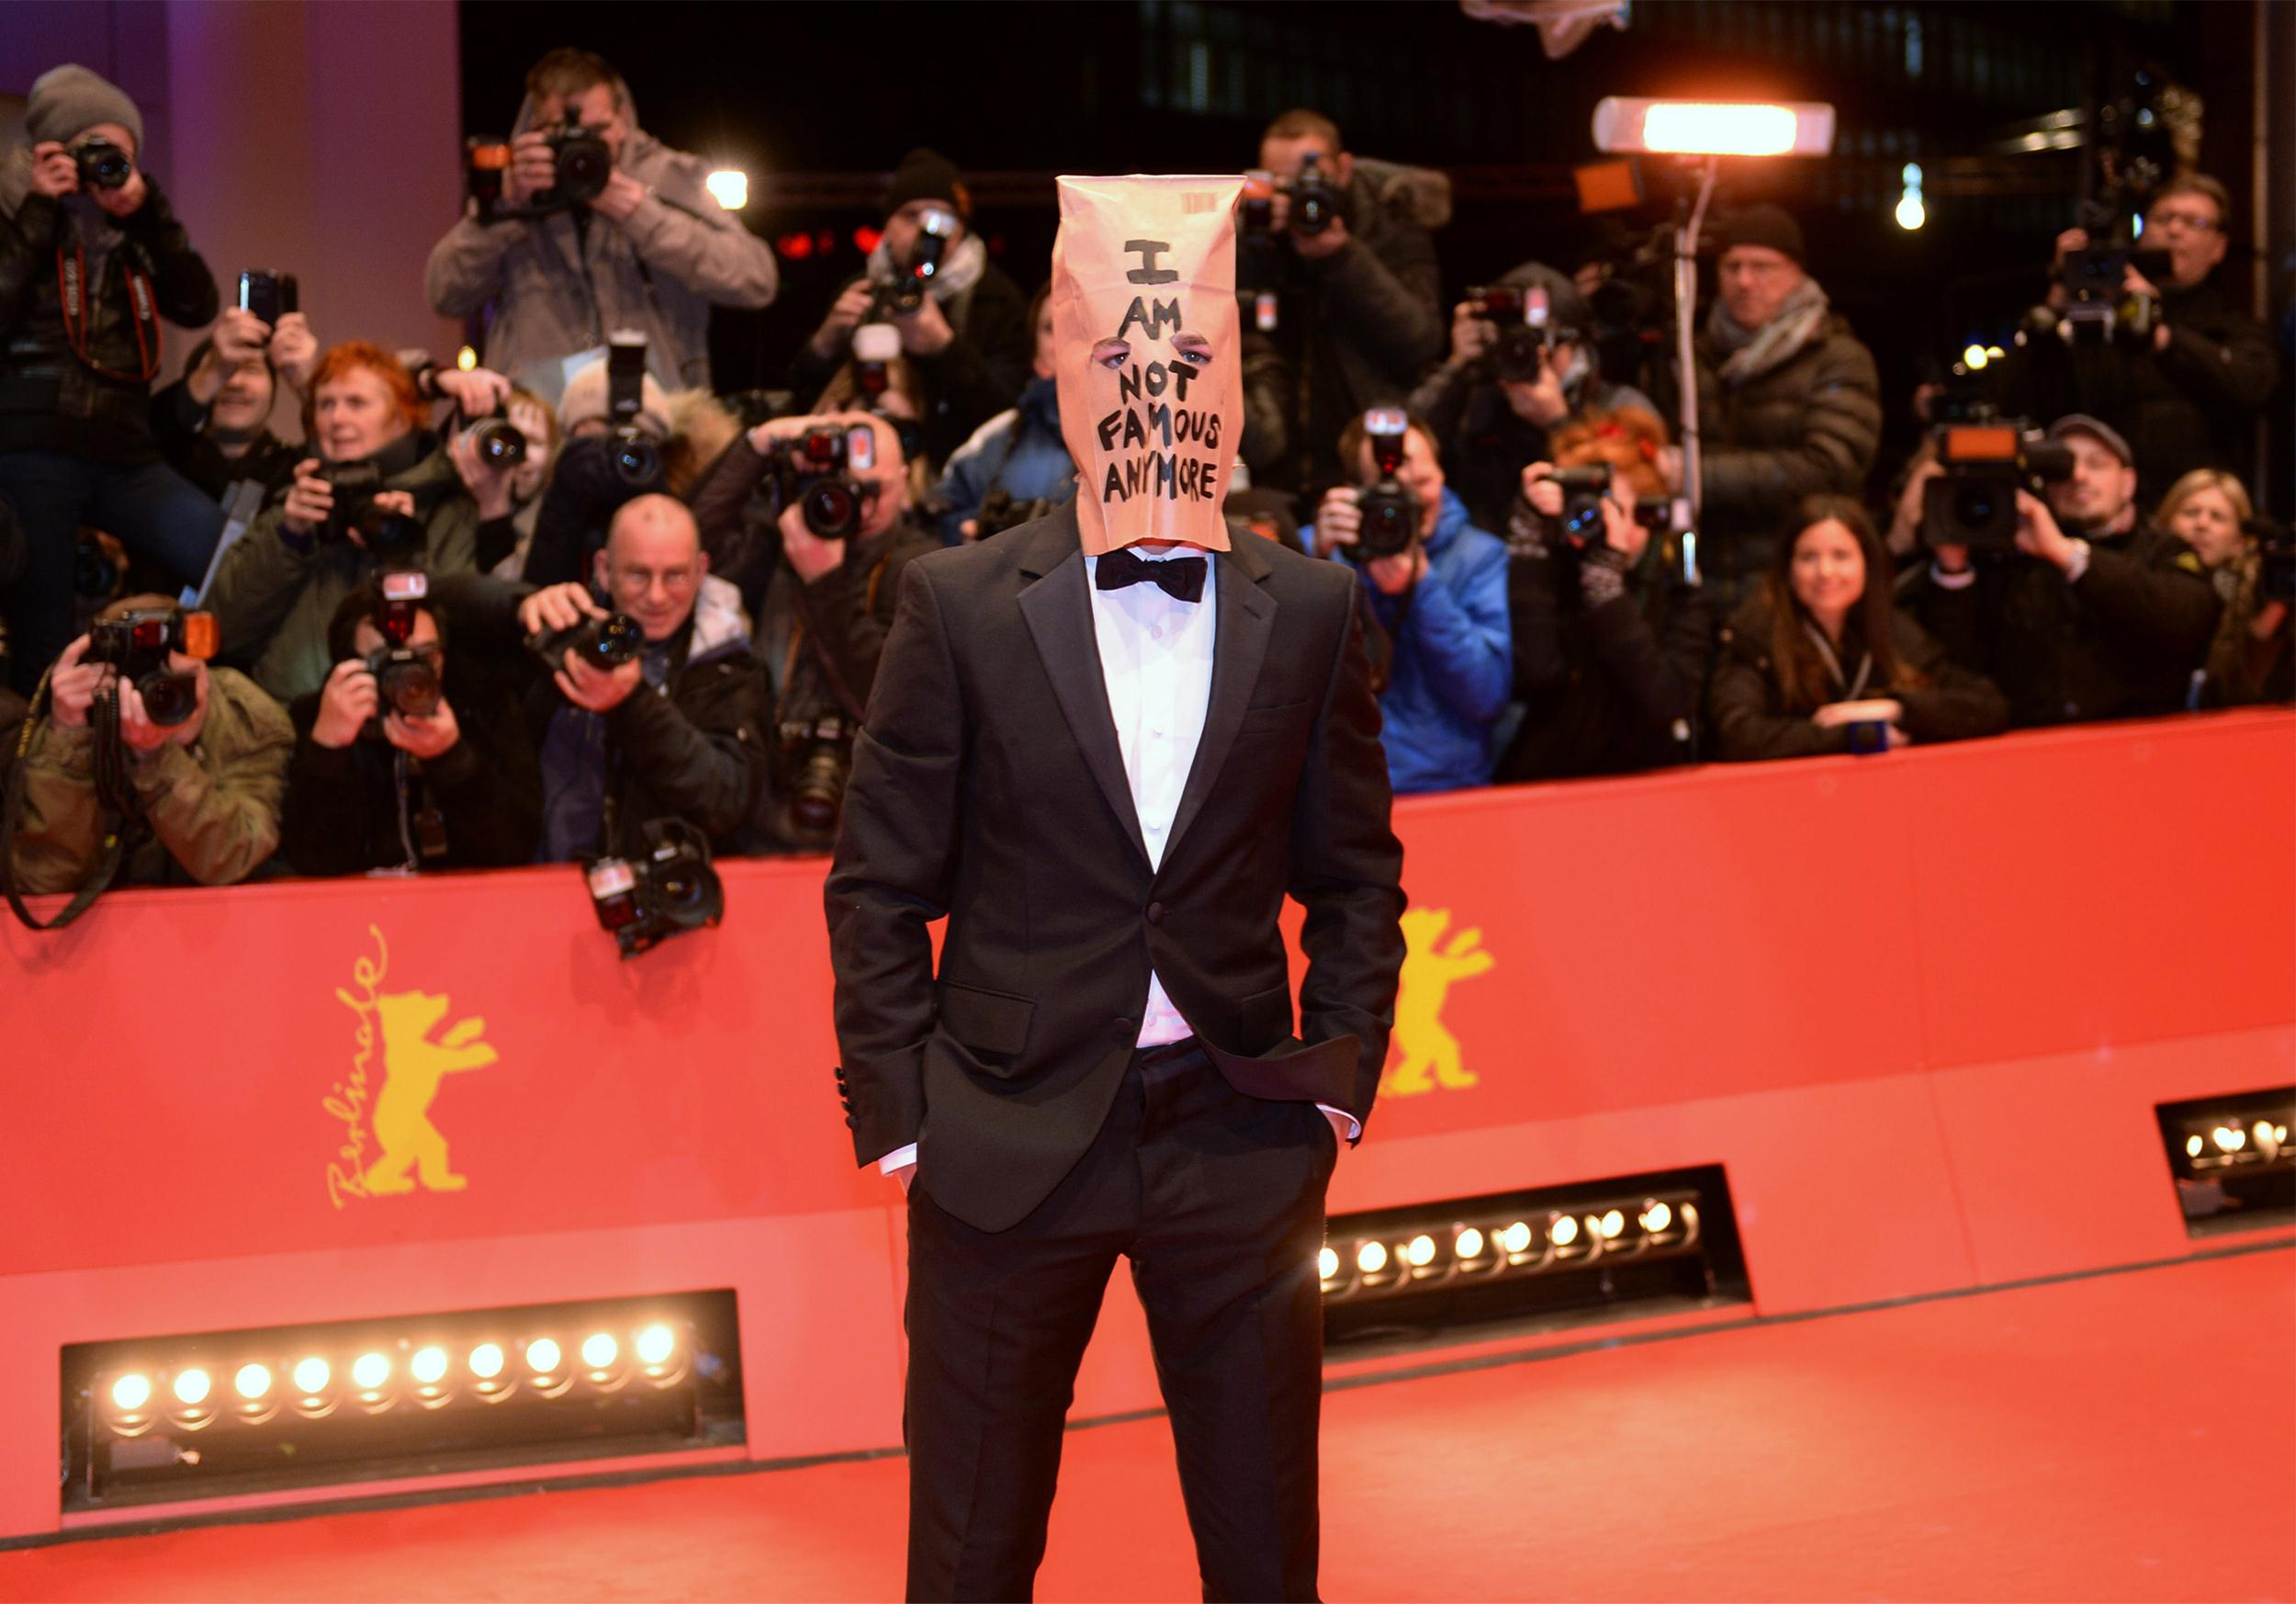 Image: US actor Shia LaBeouf arrives on the red carpet for the screening of the film